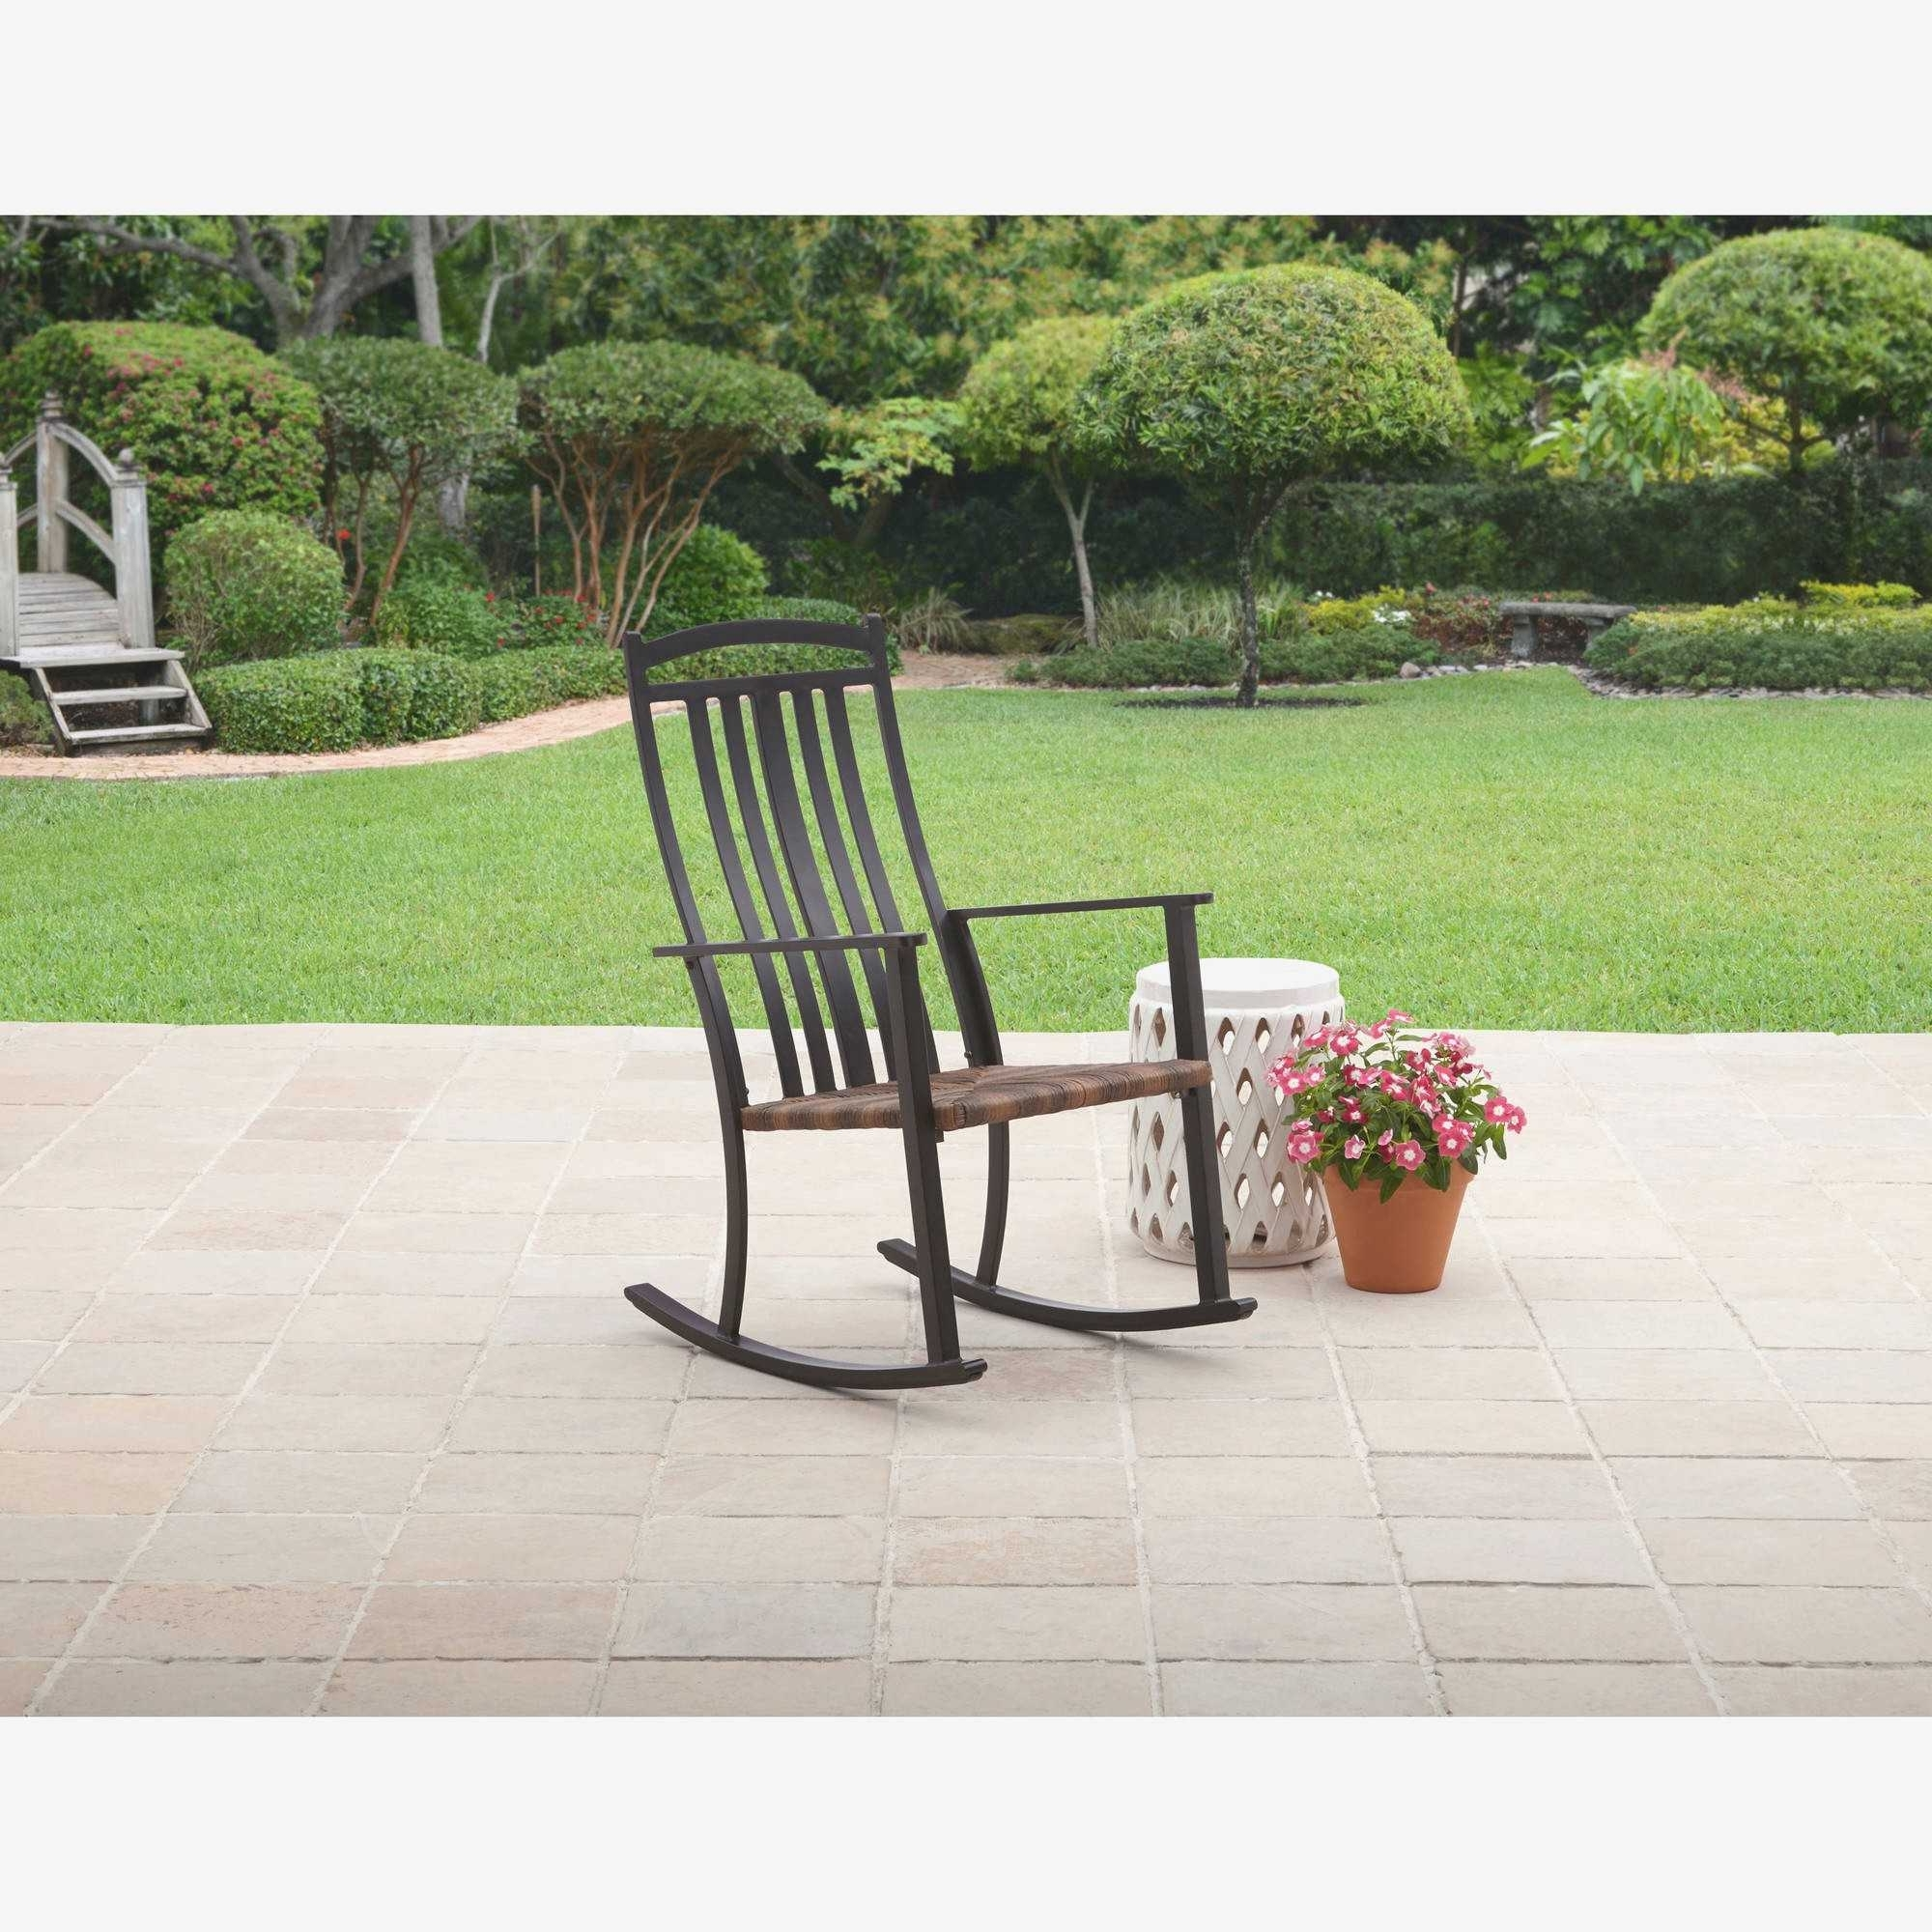 Most Up To Date Kroger Patio Furniture Unique Tips For Making Your Own Outdoor With Rocking Chairs At Kroger (View 9 of 15)